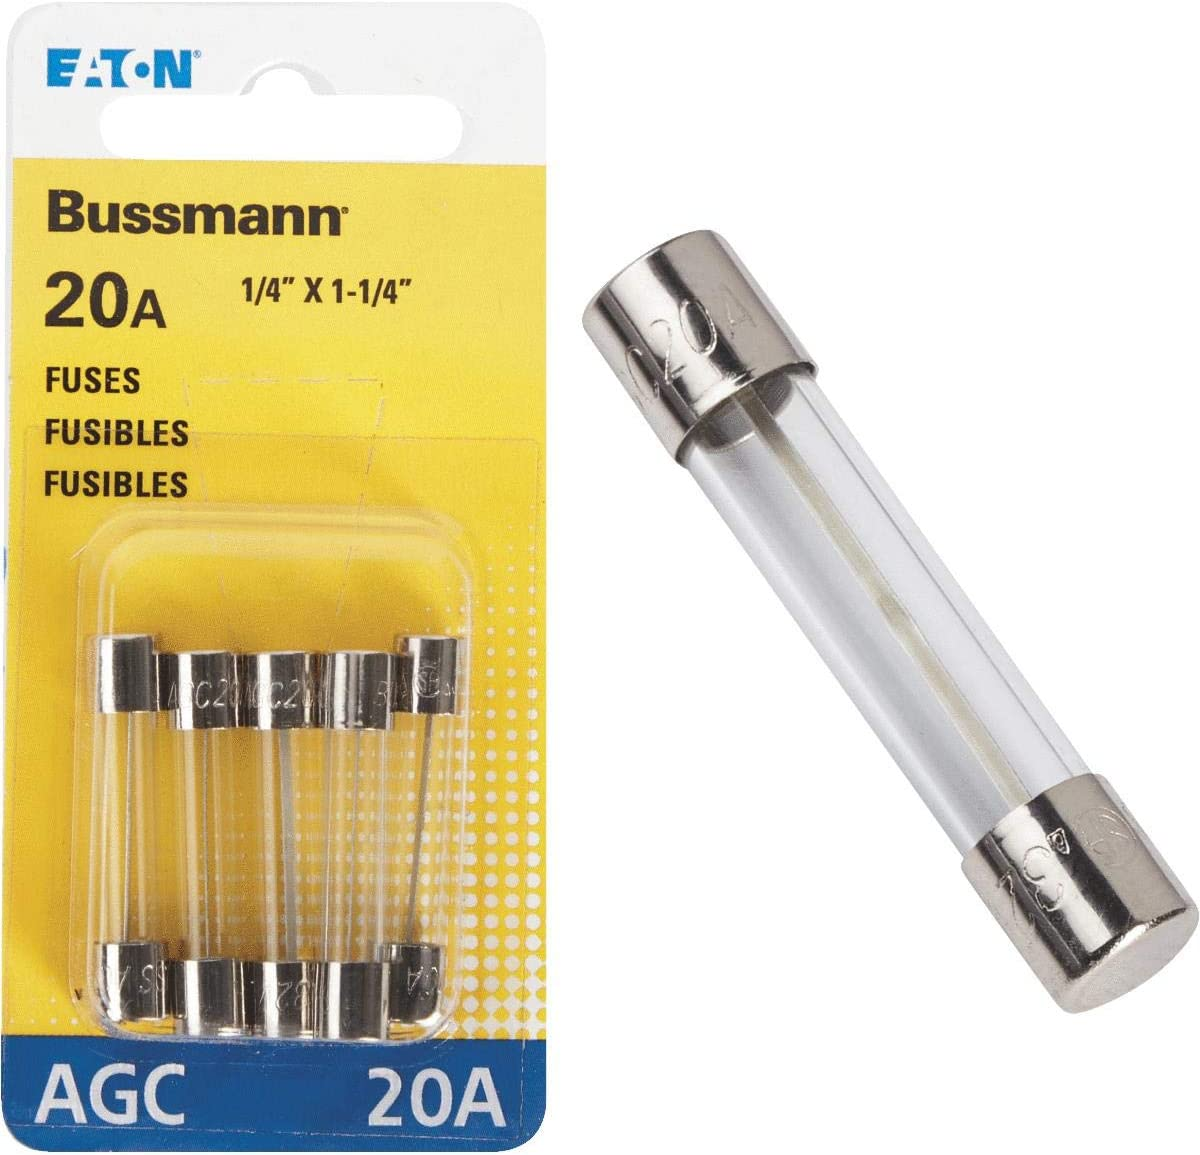 25 Pack Install Bay AGC20-25 20 Amp  AGC Fuses